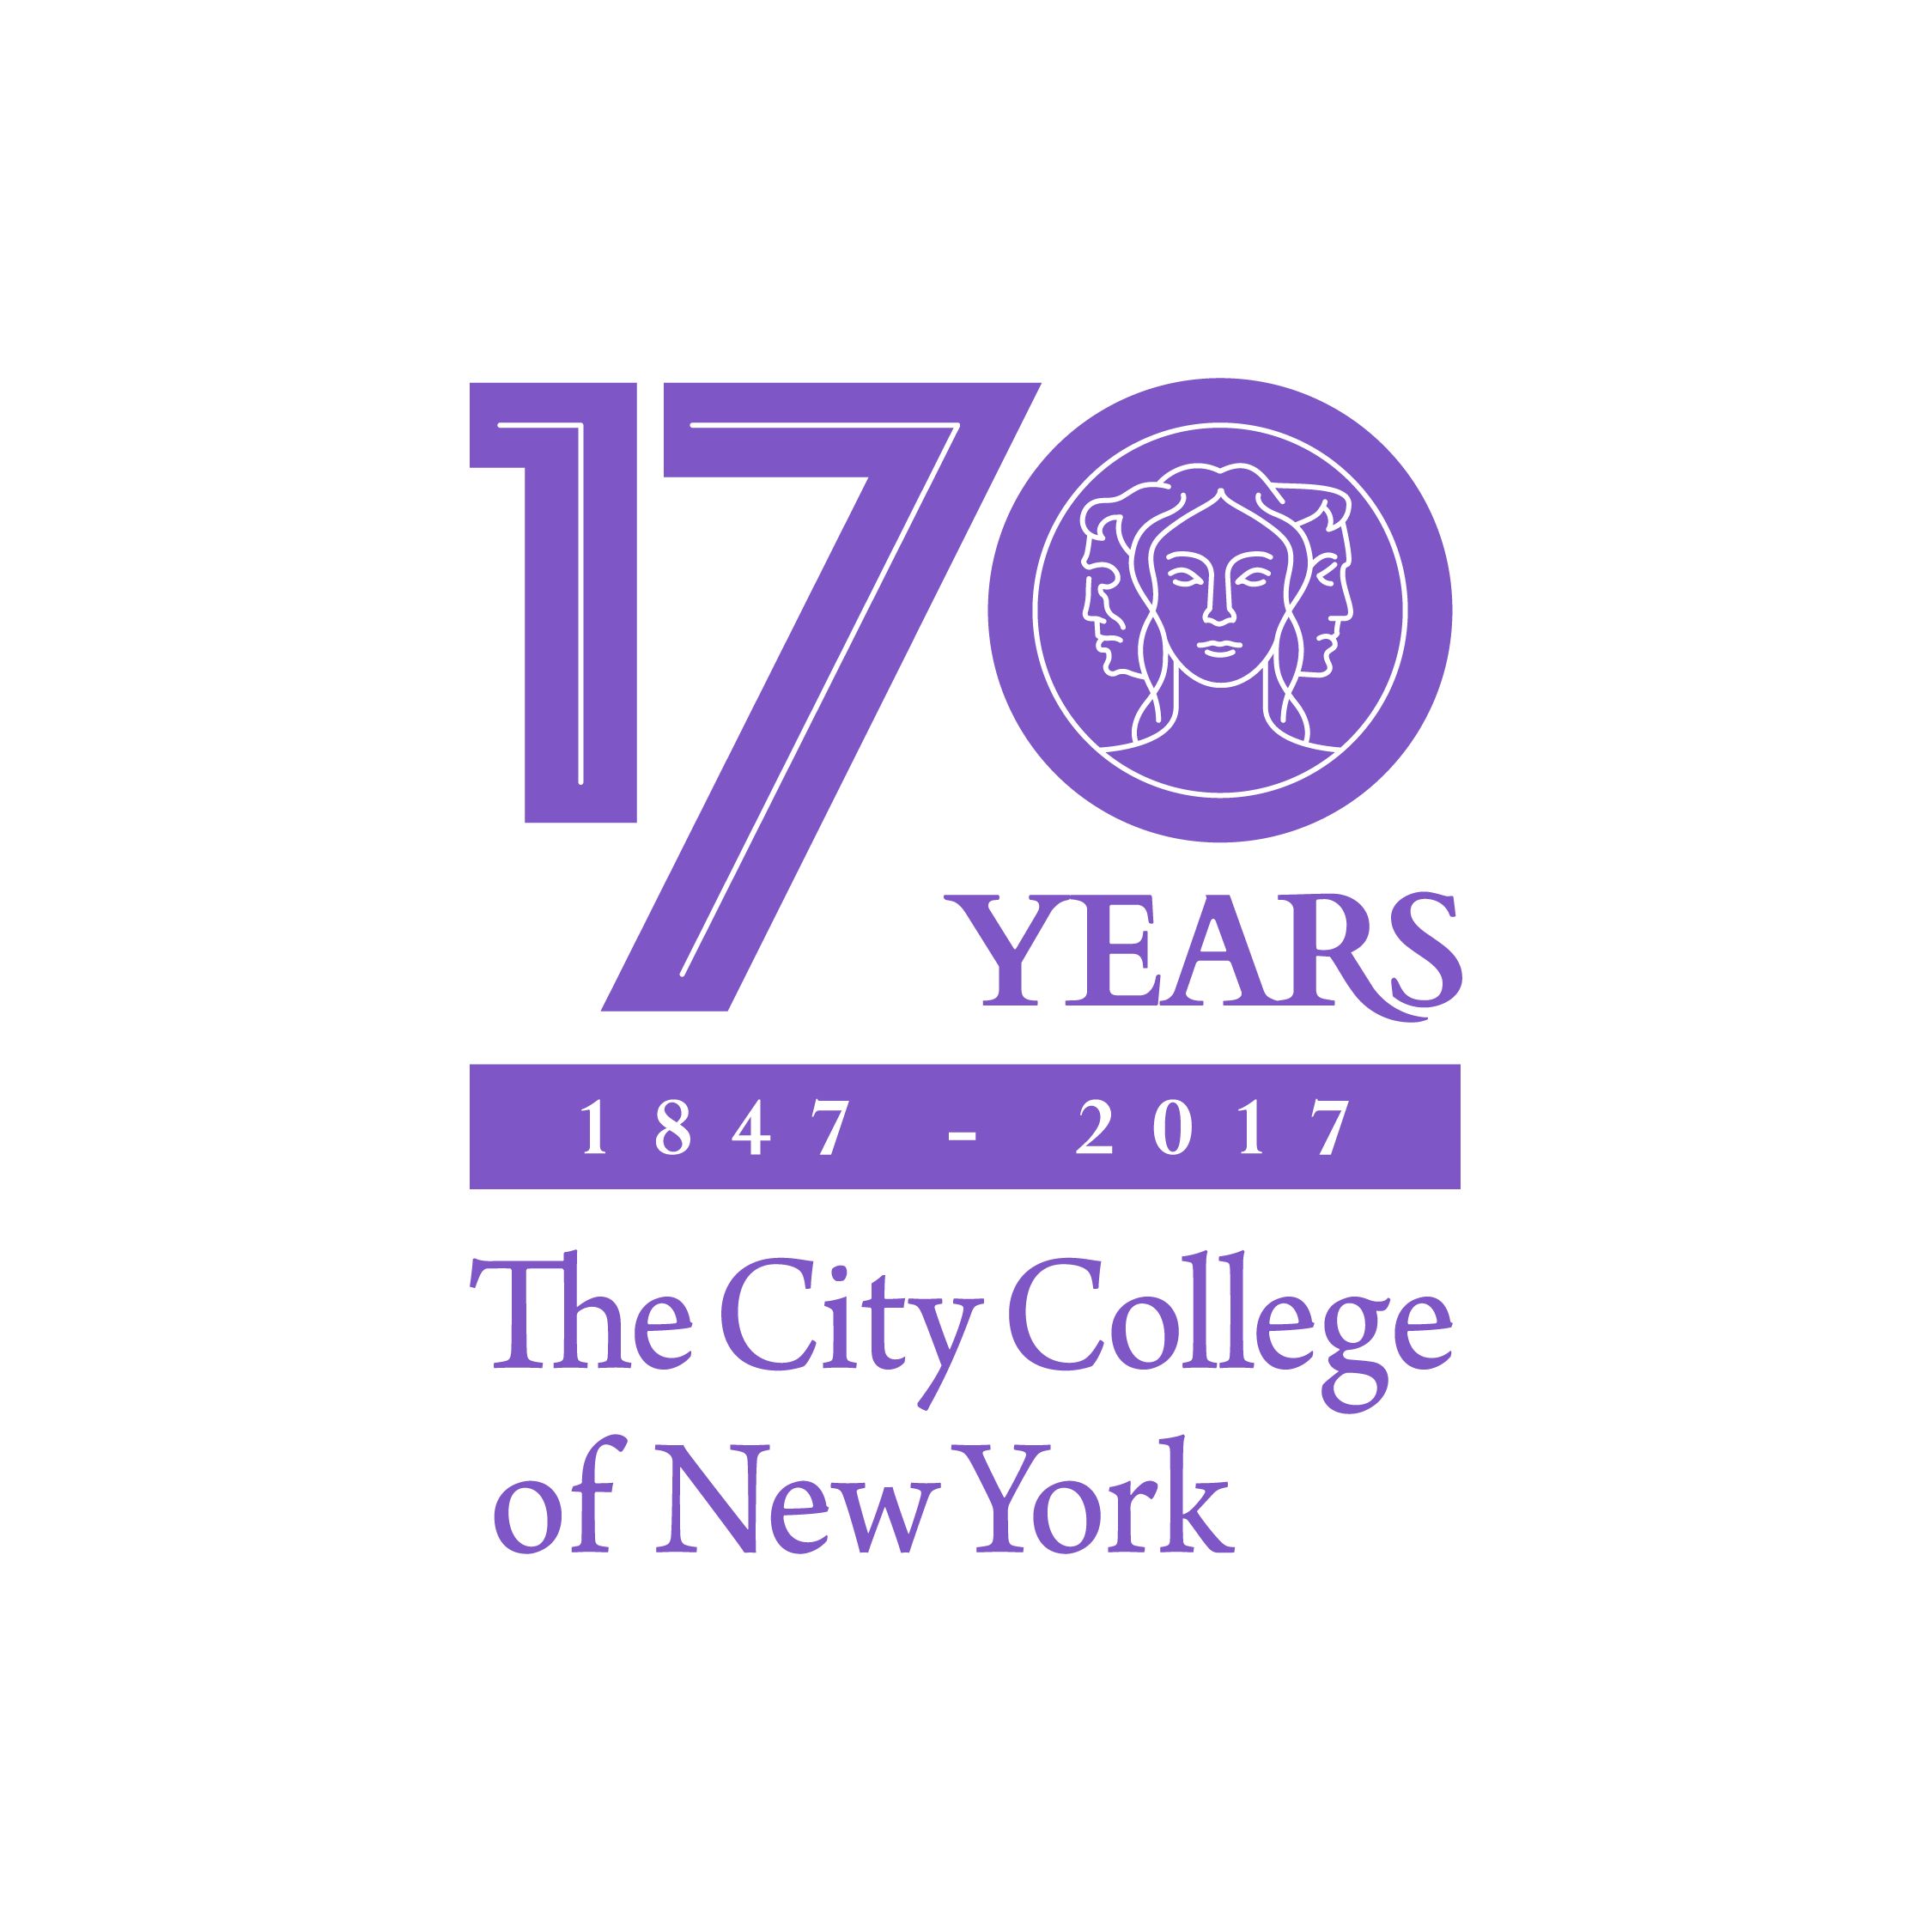 Anniversary logo the city college of new york to altavistaventures Choice Image